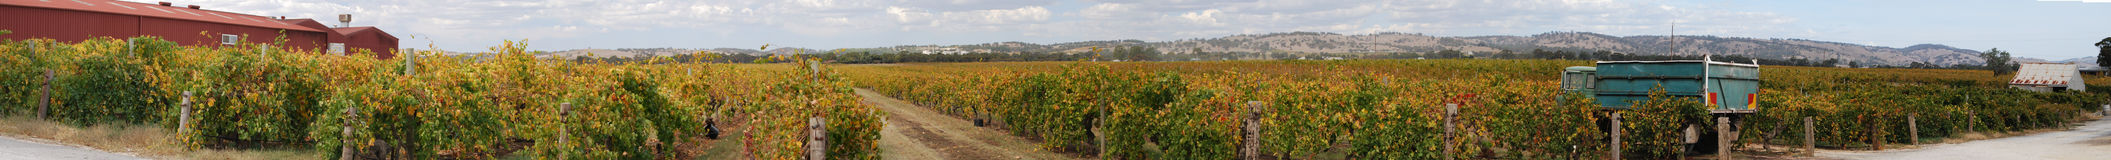 Barossa Valley Vines Royalty Free Stock Photography